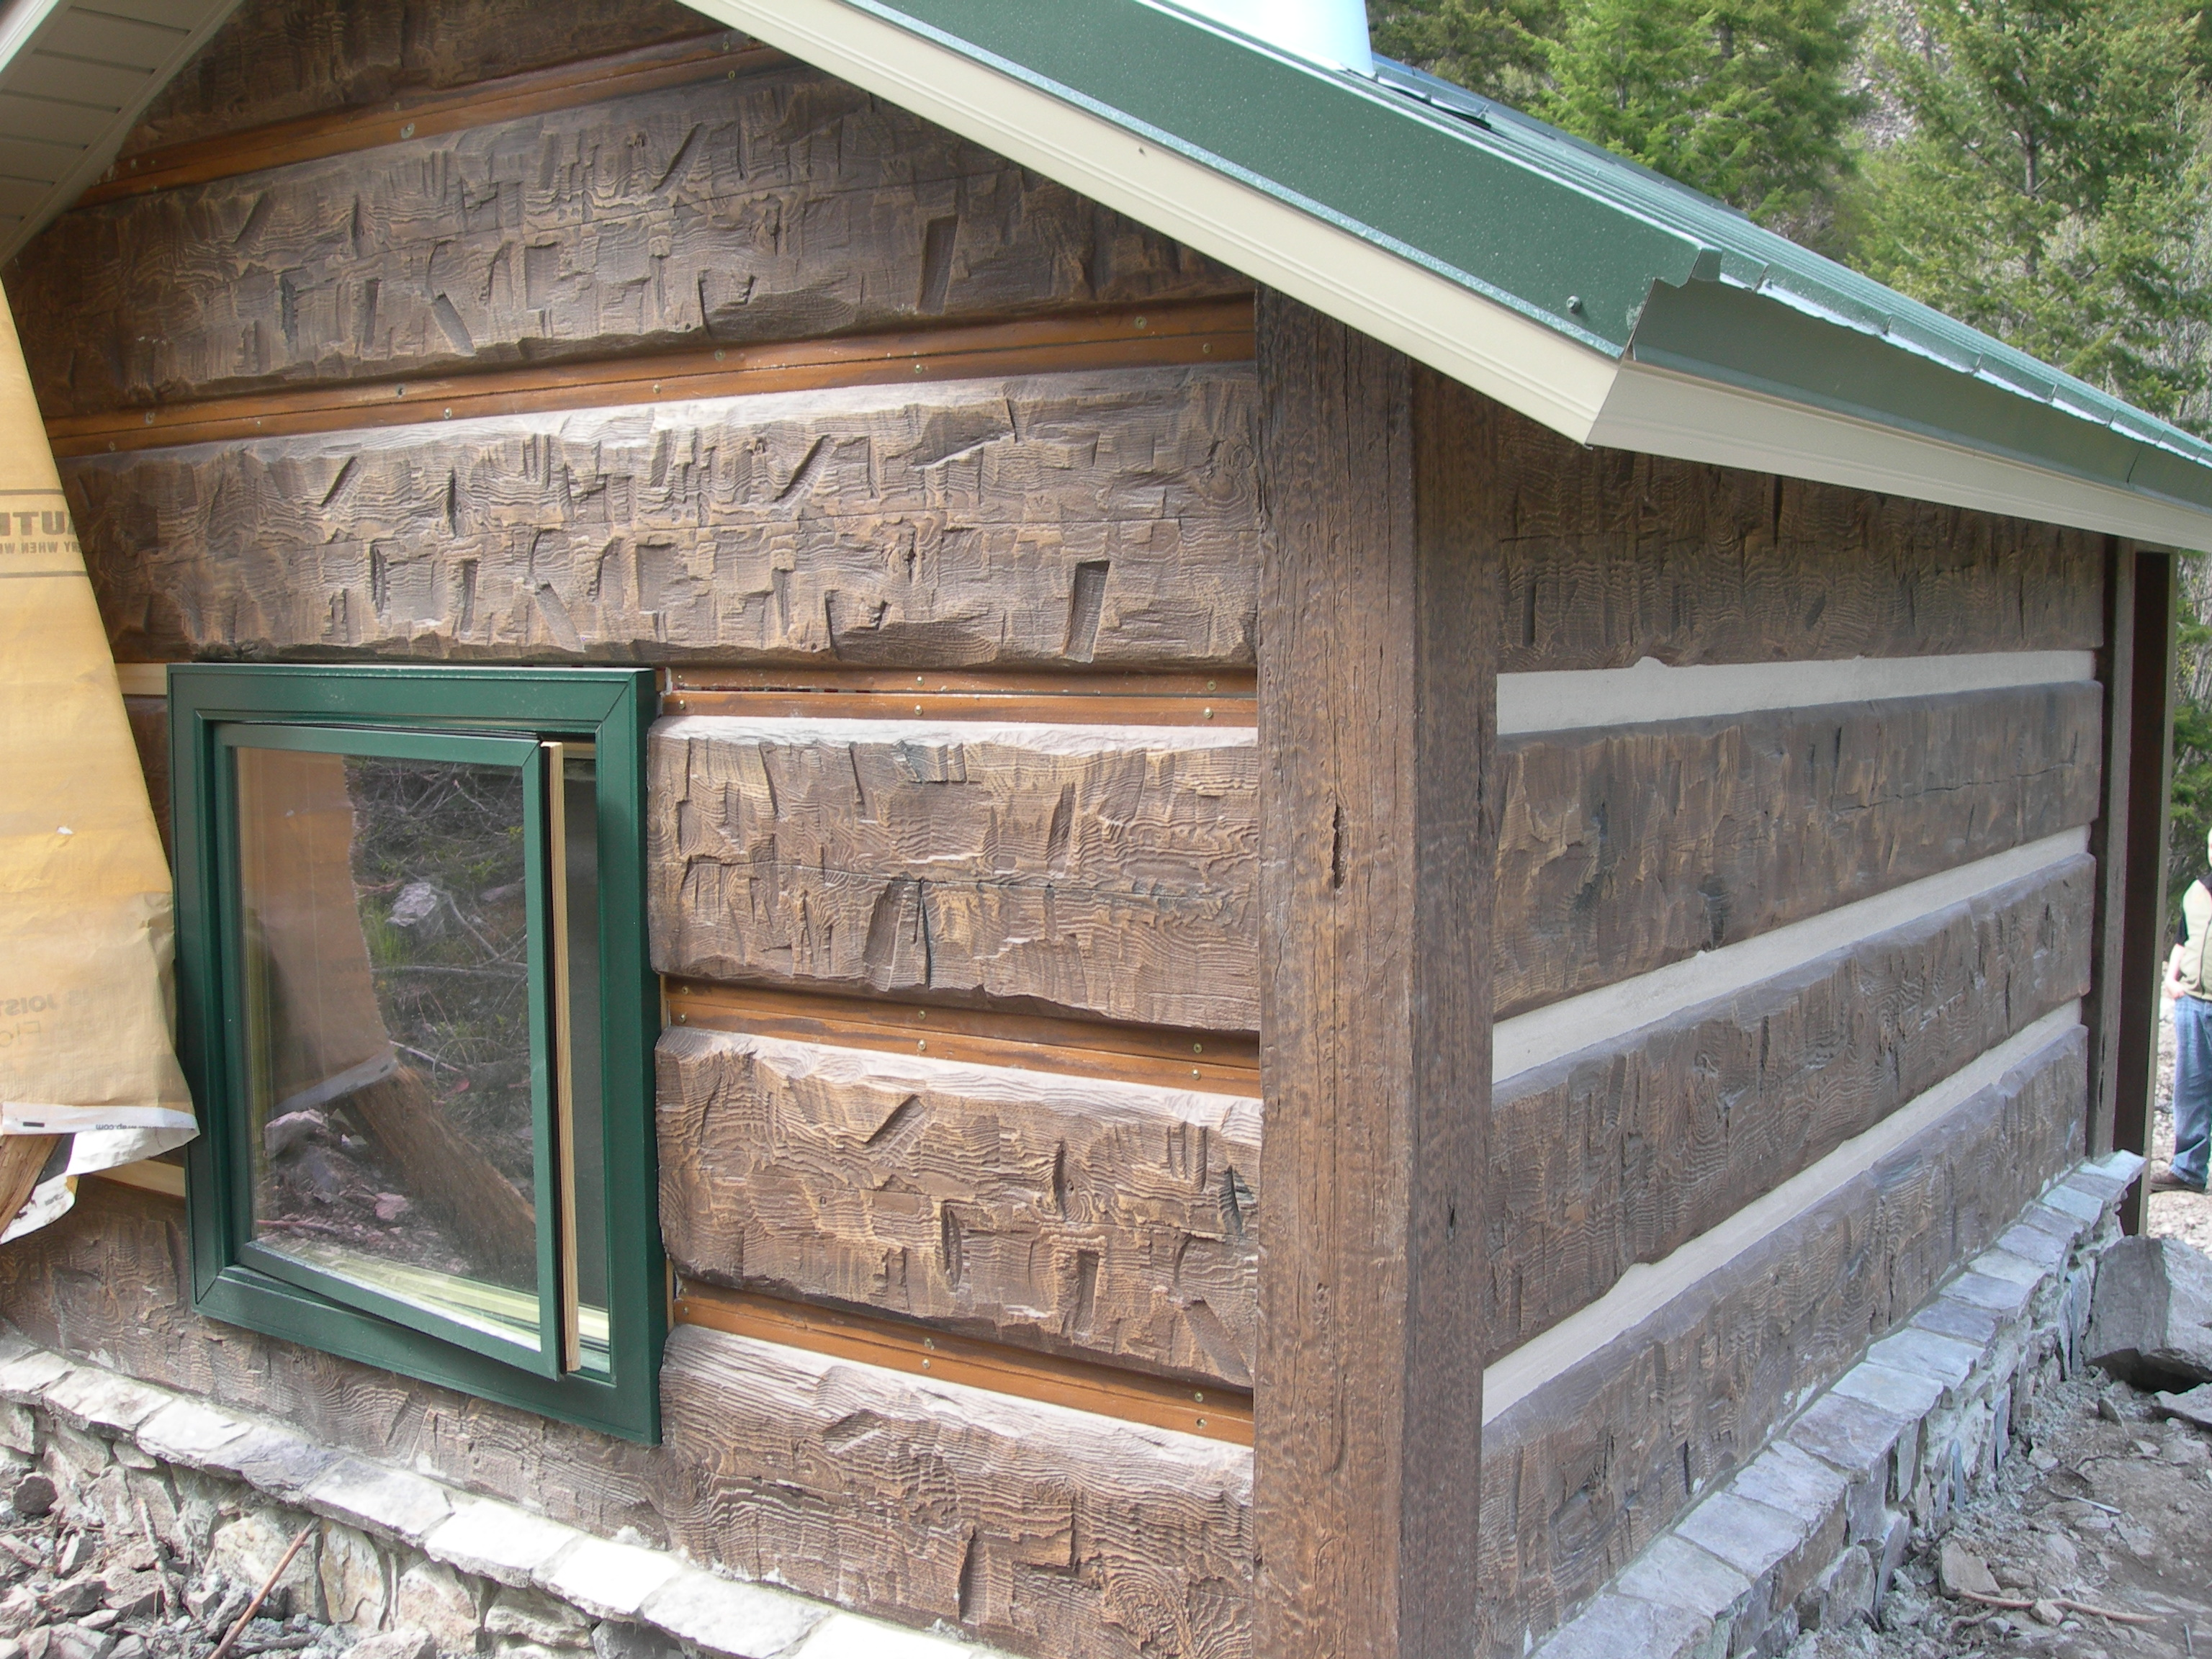 Chinking What Is It And How Is It Used In Concrete Log Homes?. Full resolution‎  file, nominally Width 3072 Height 2304 pixels, file with #8D6B3E.